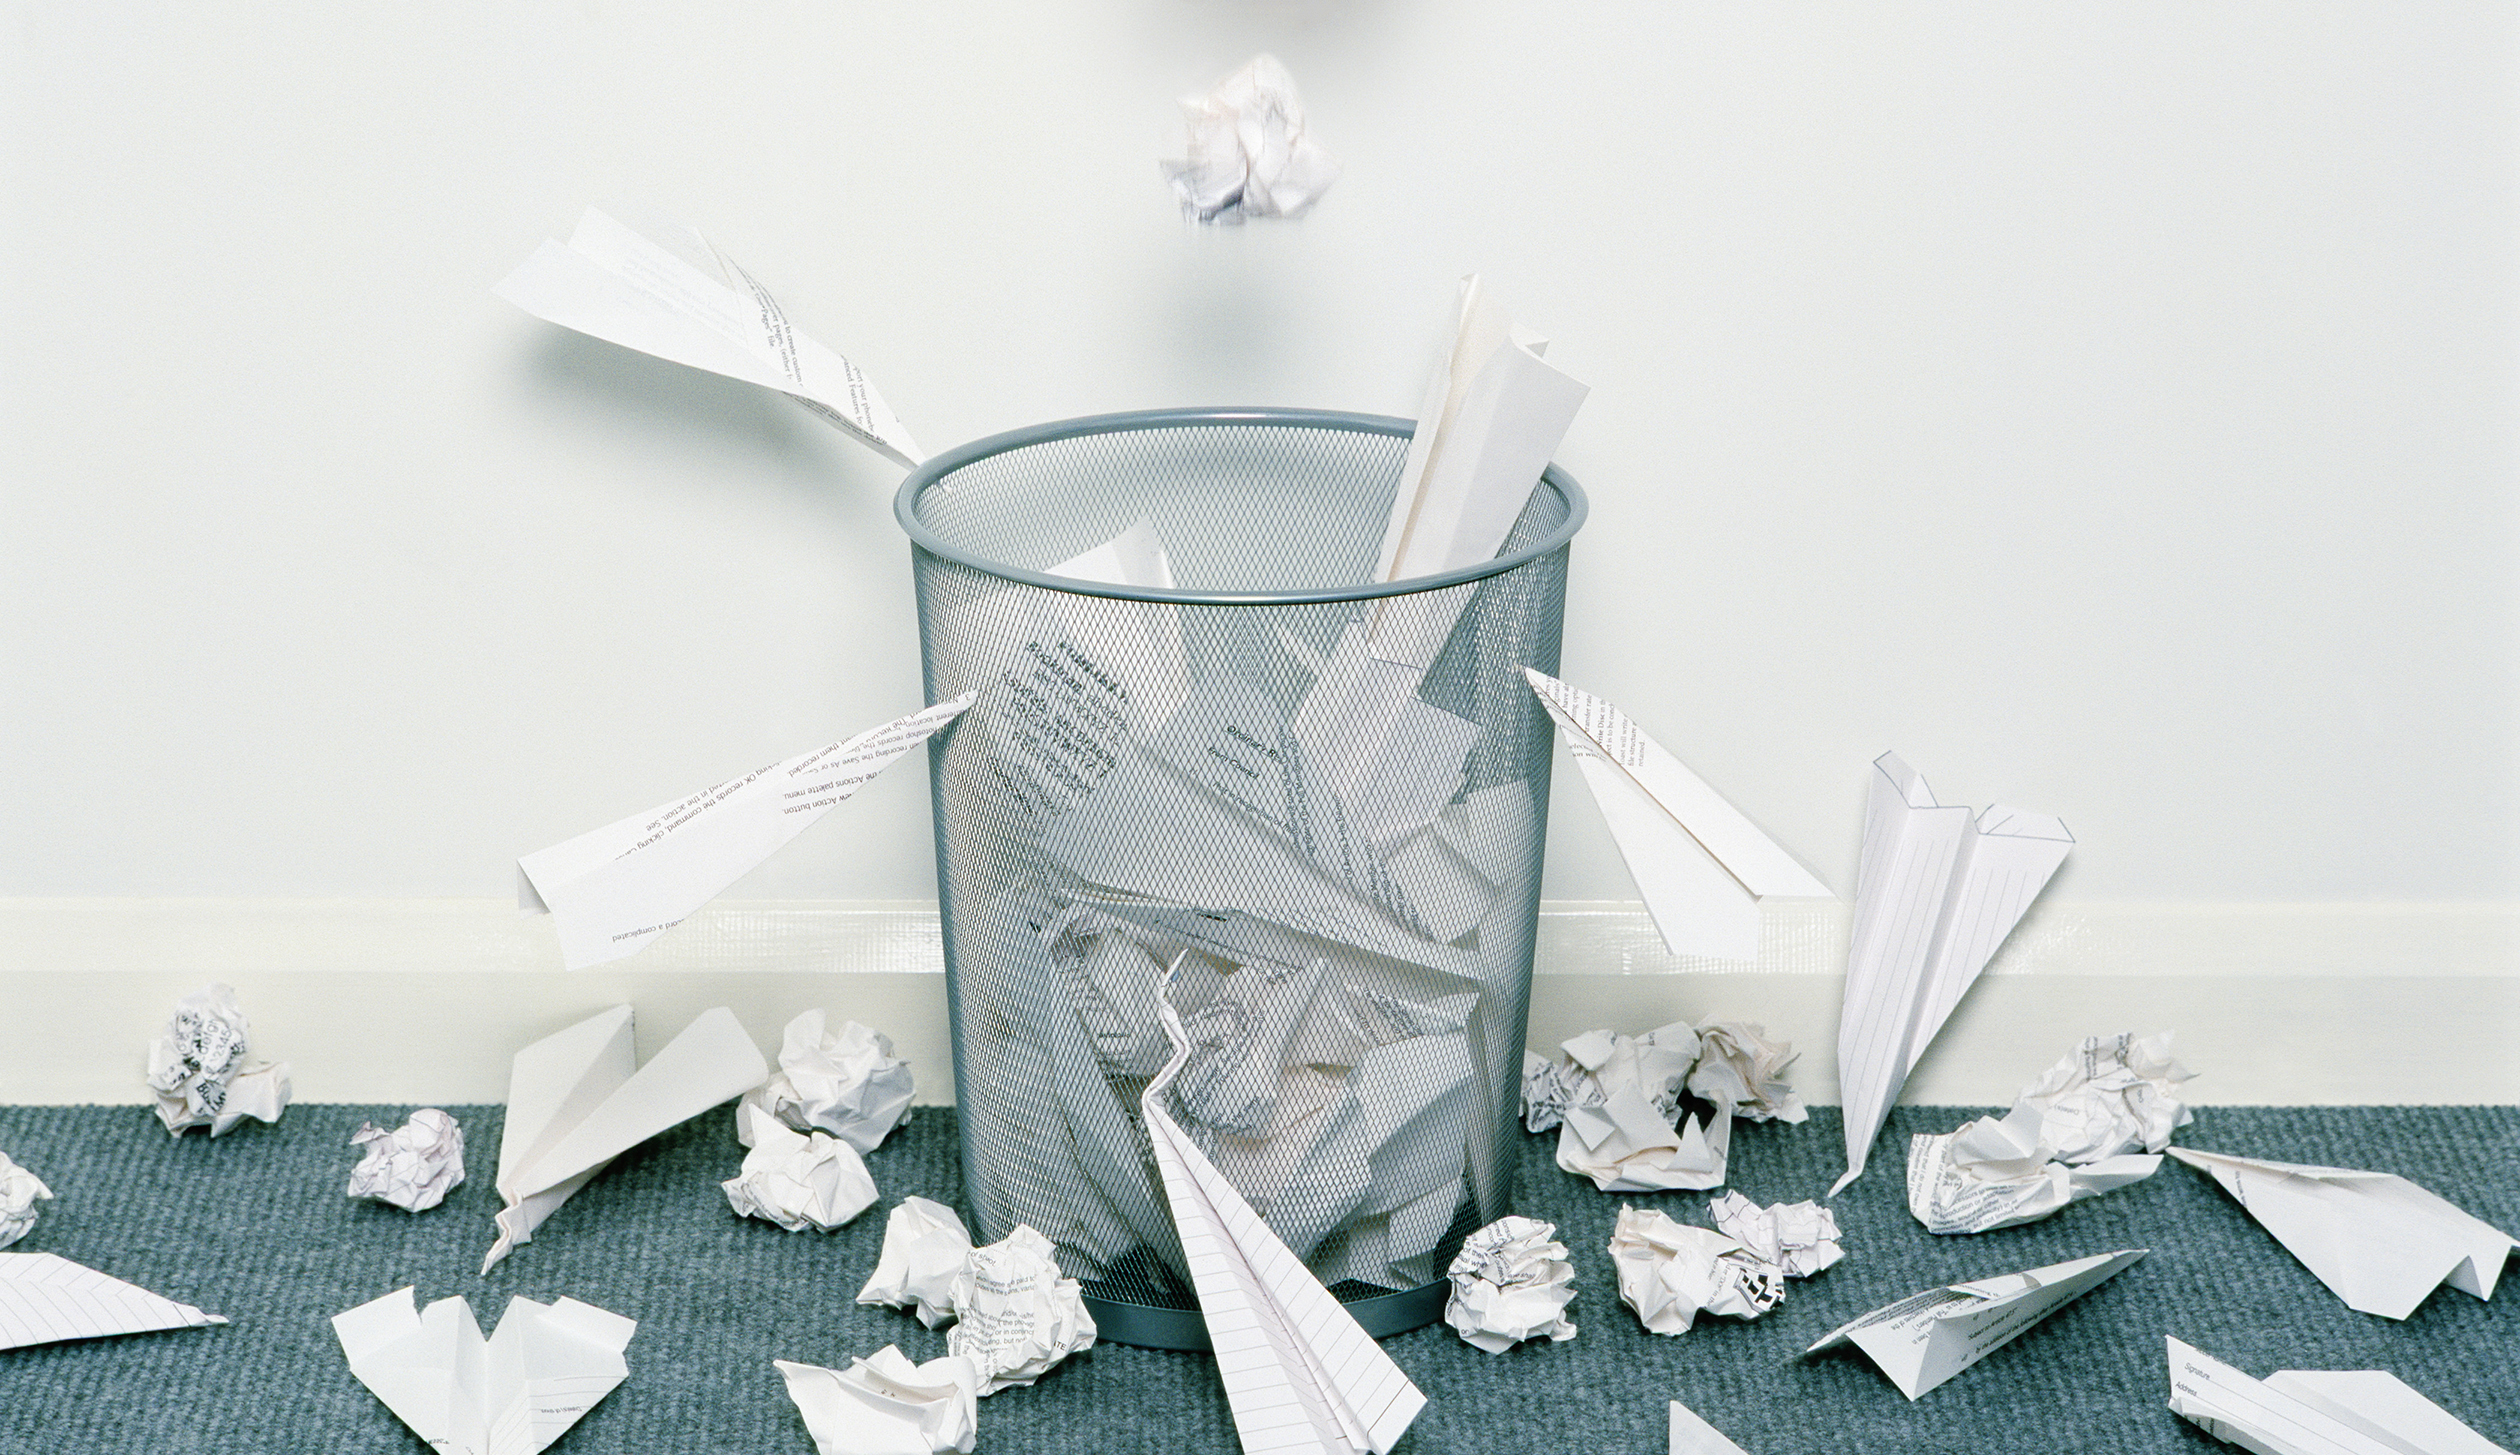 Man dropping crumpled paper in bin surrounded with paper aeroplanes